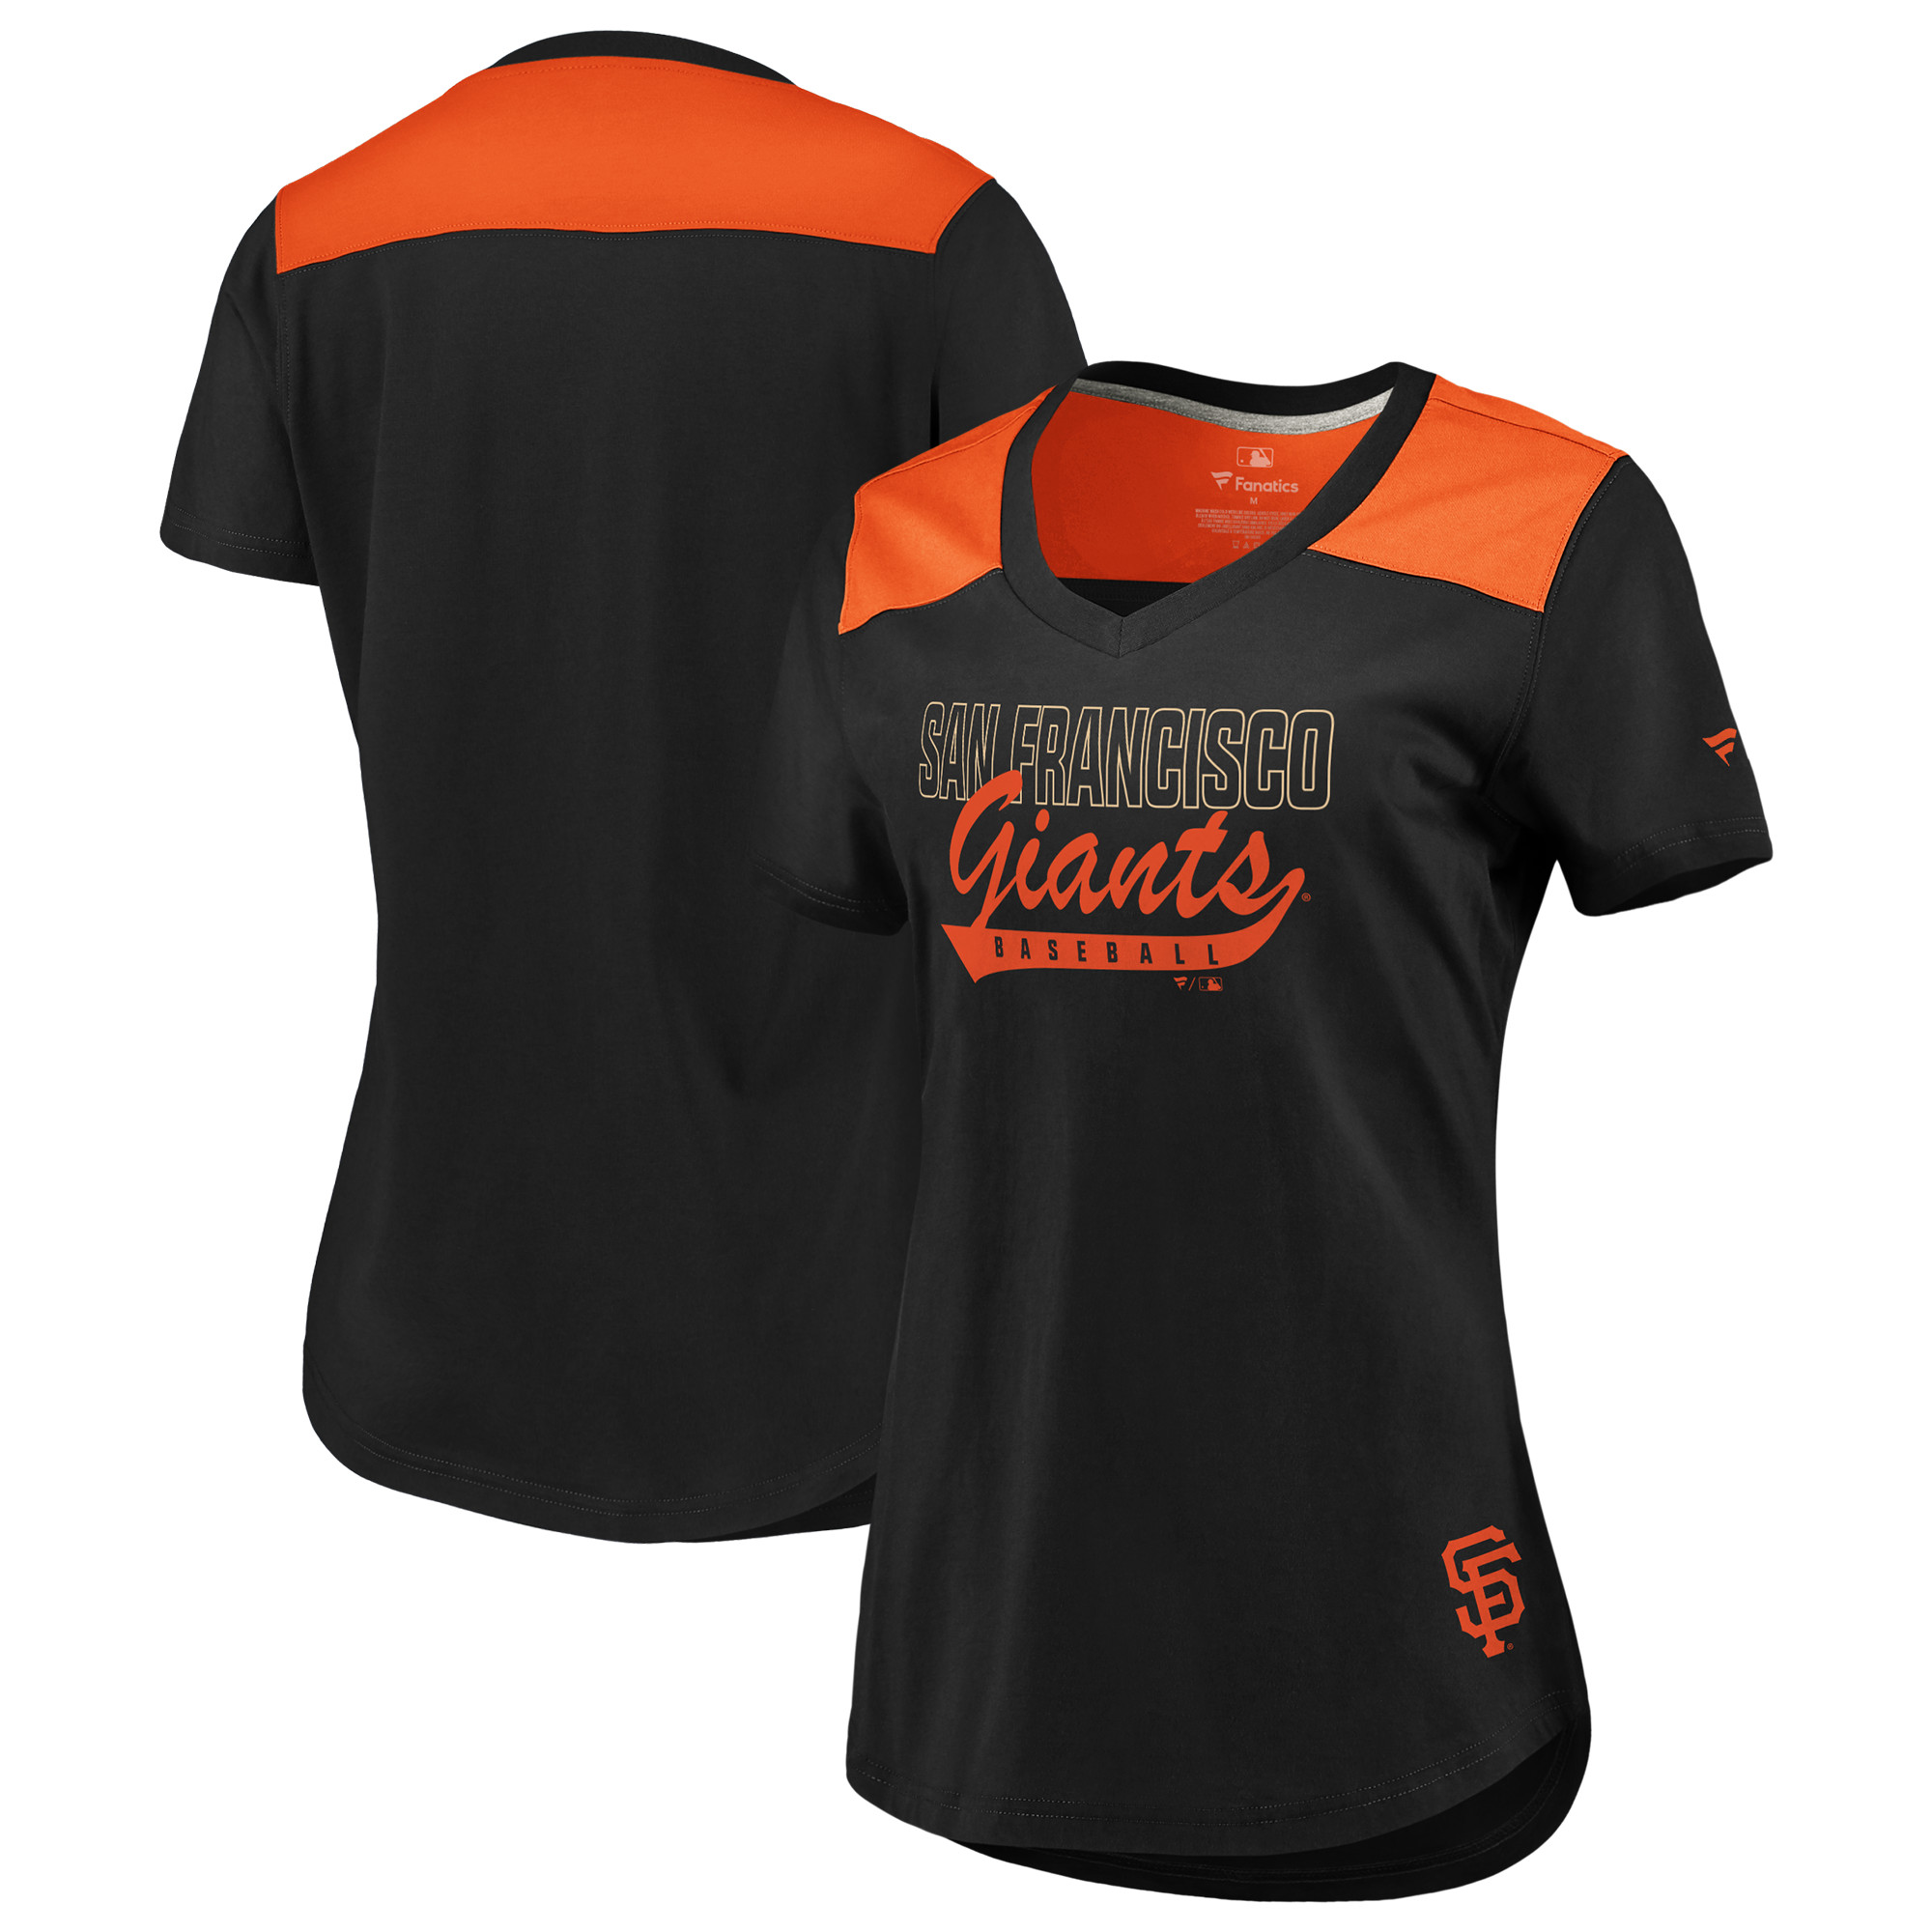 San Francisco Giants Fanatics Branded Women's Iconic V-Neck T-Shirt - Black/Orange